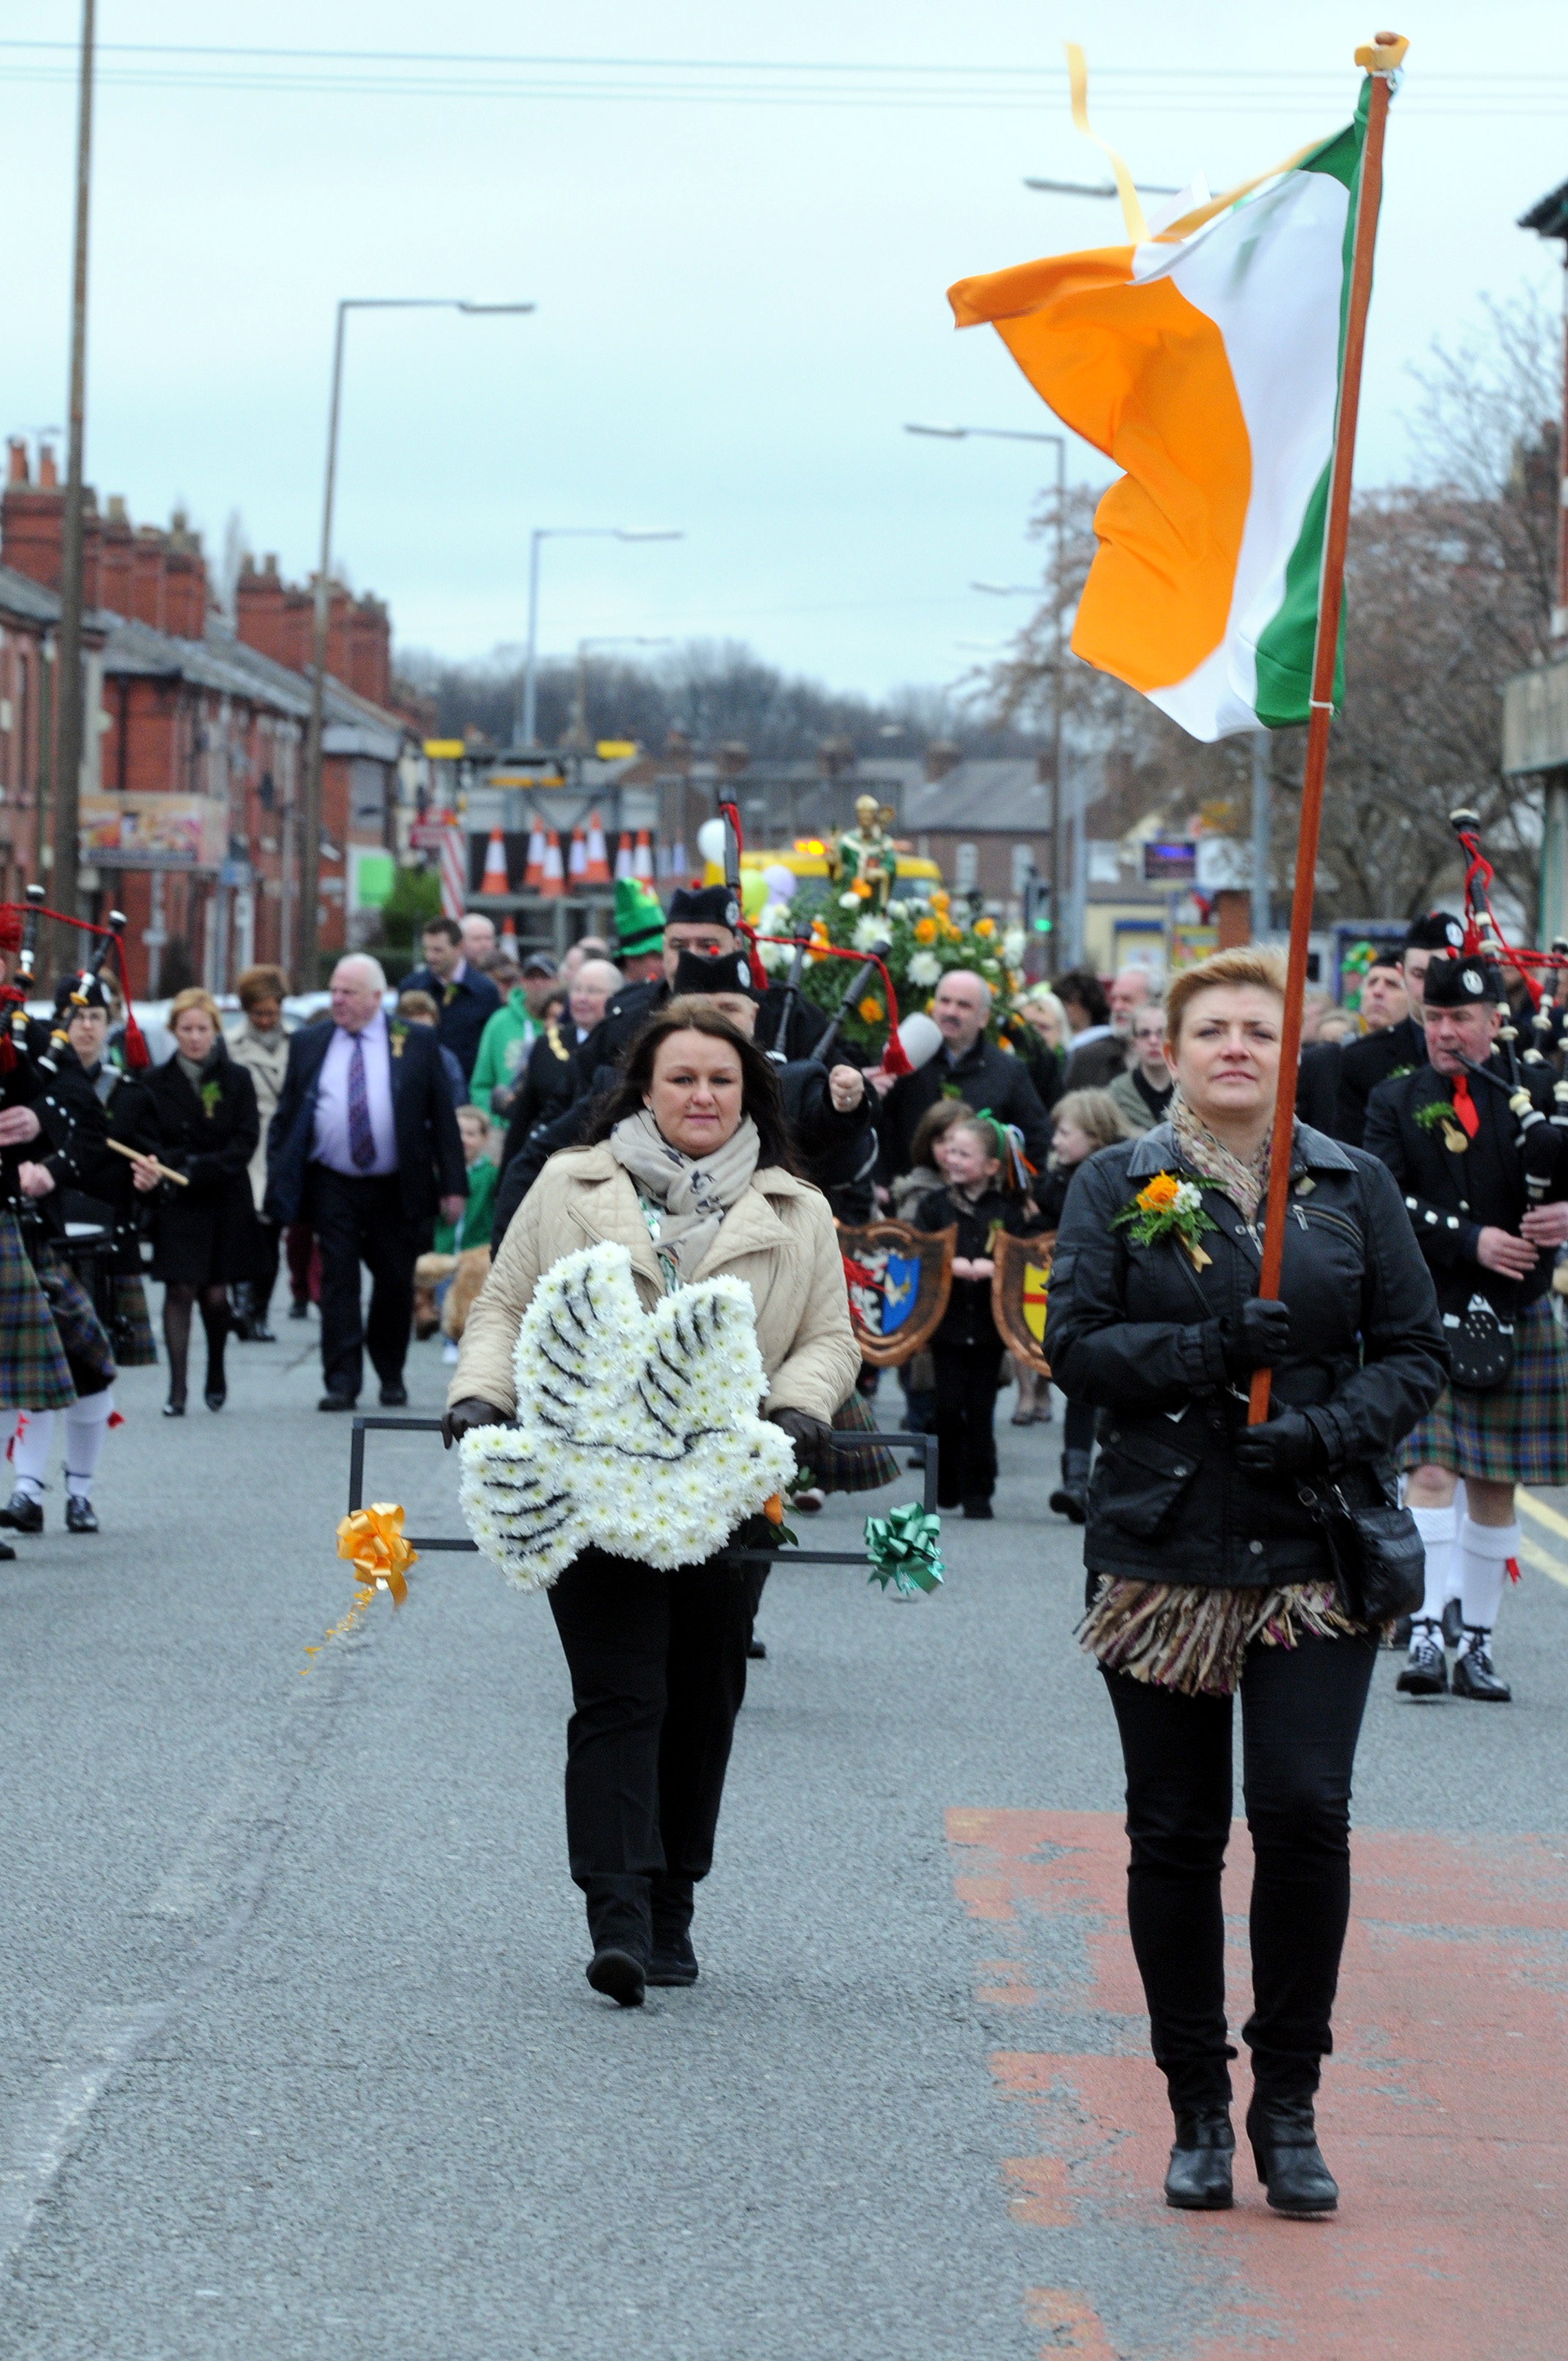 PICTURES: Annual Irish parade makes its way through Warrington